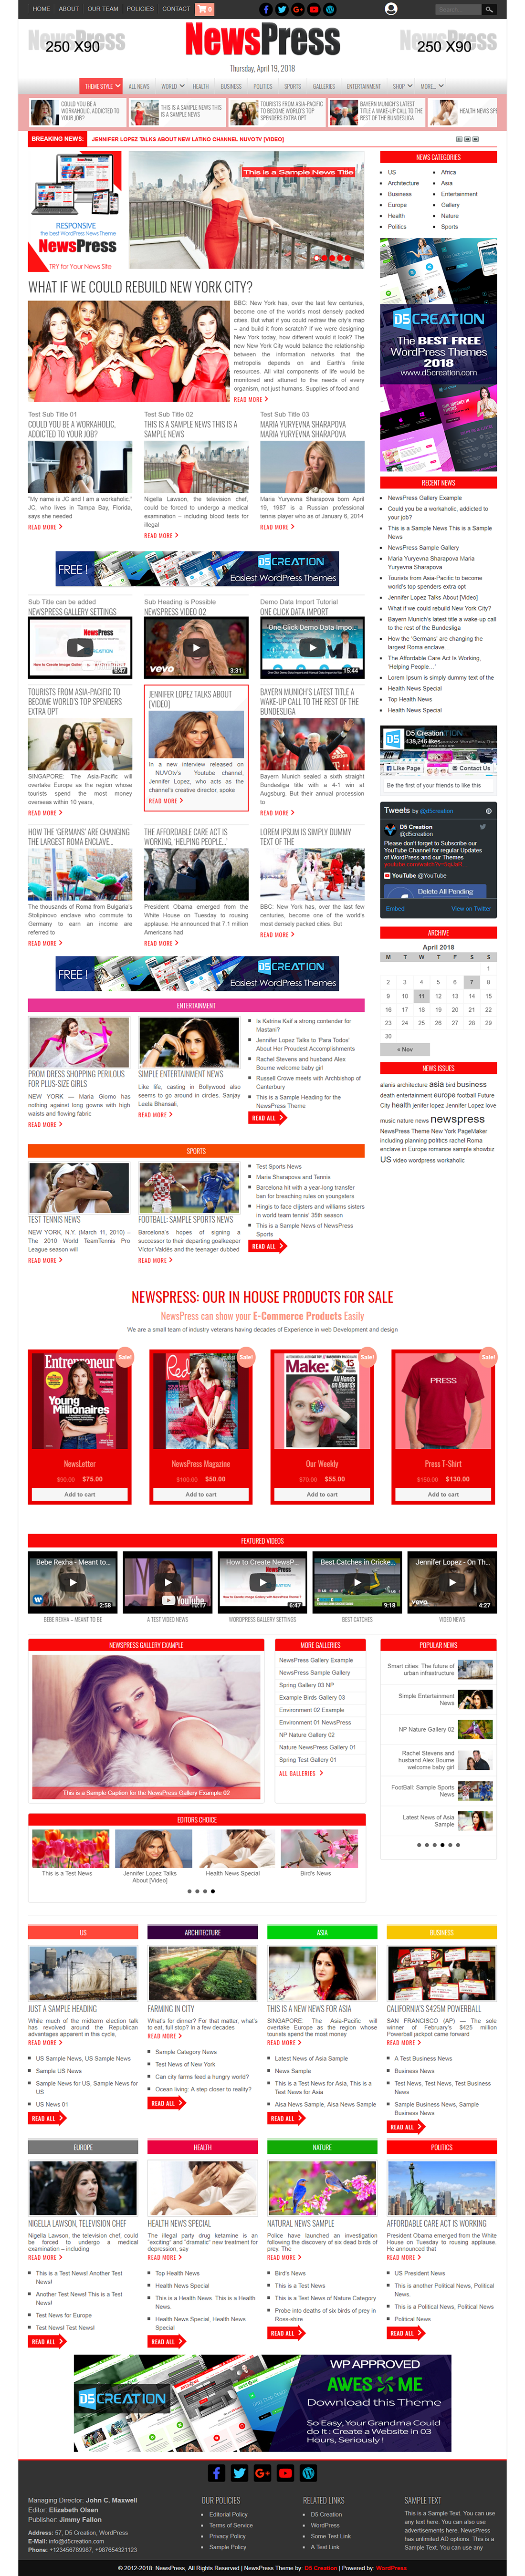 NewsPress, WordPress News Theme